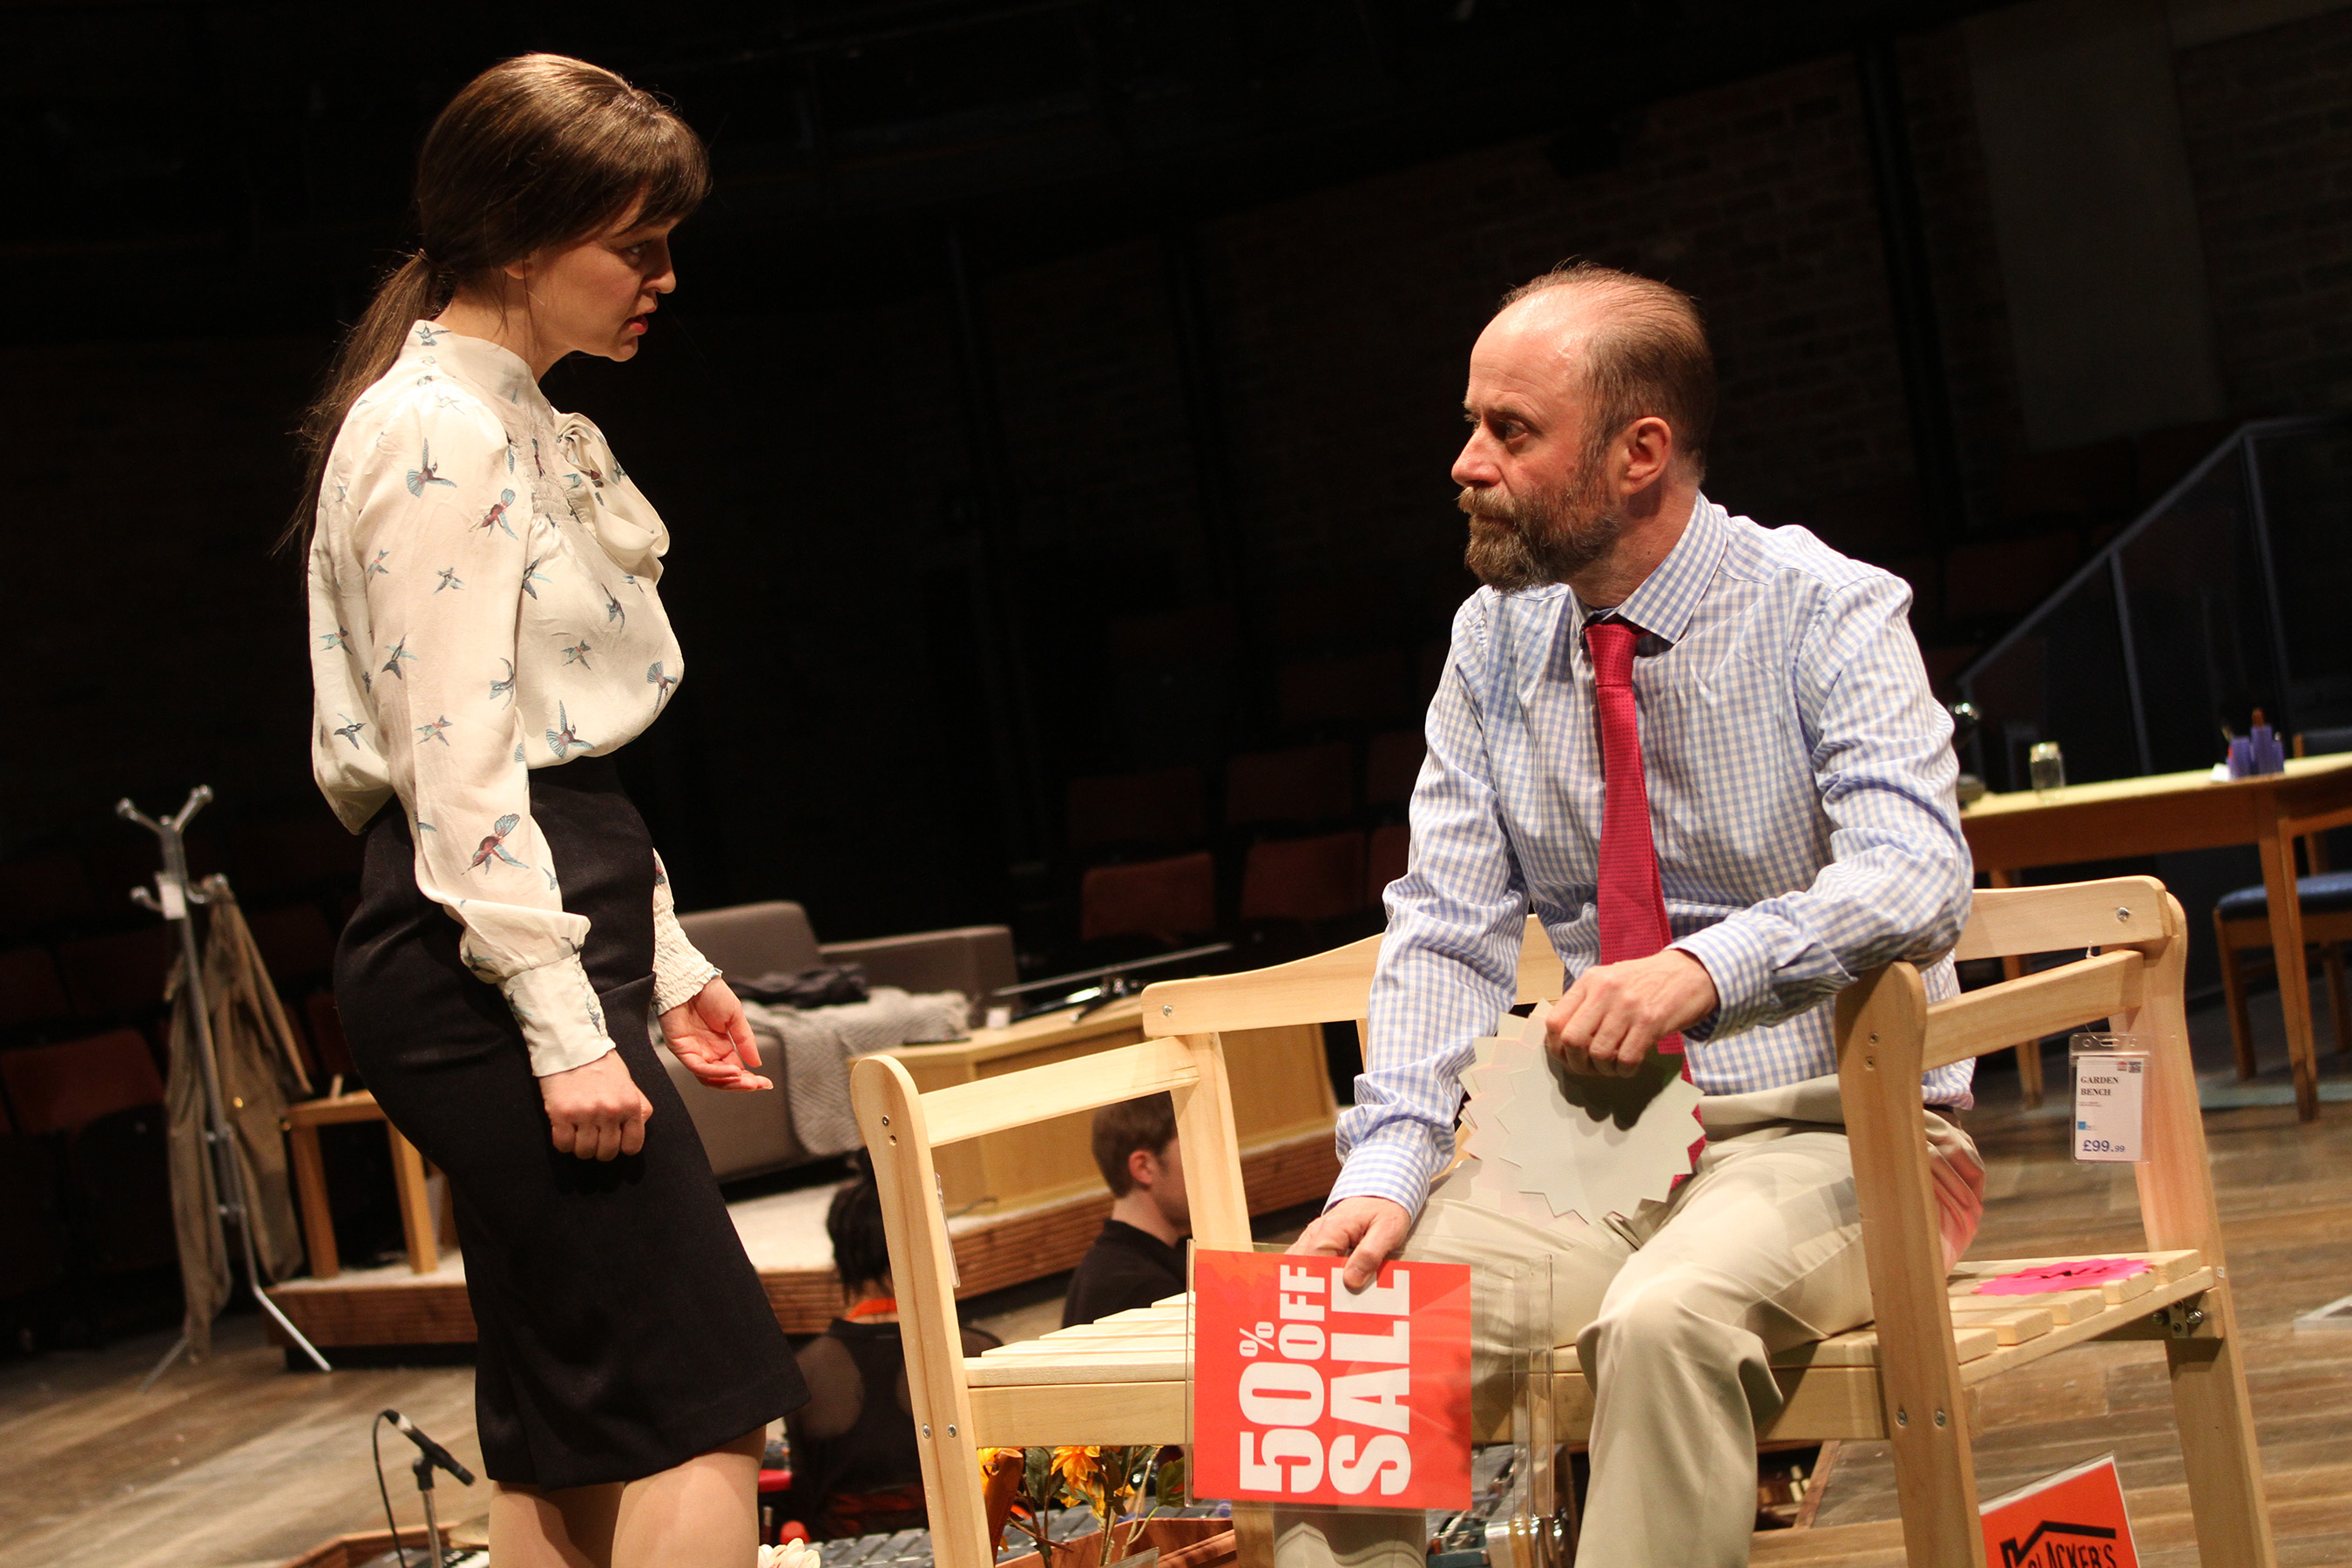 Laura Dos Santos & Patrick Brennan in The Sum, photograph by Stephen Vaughan IMG_2441 #